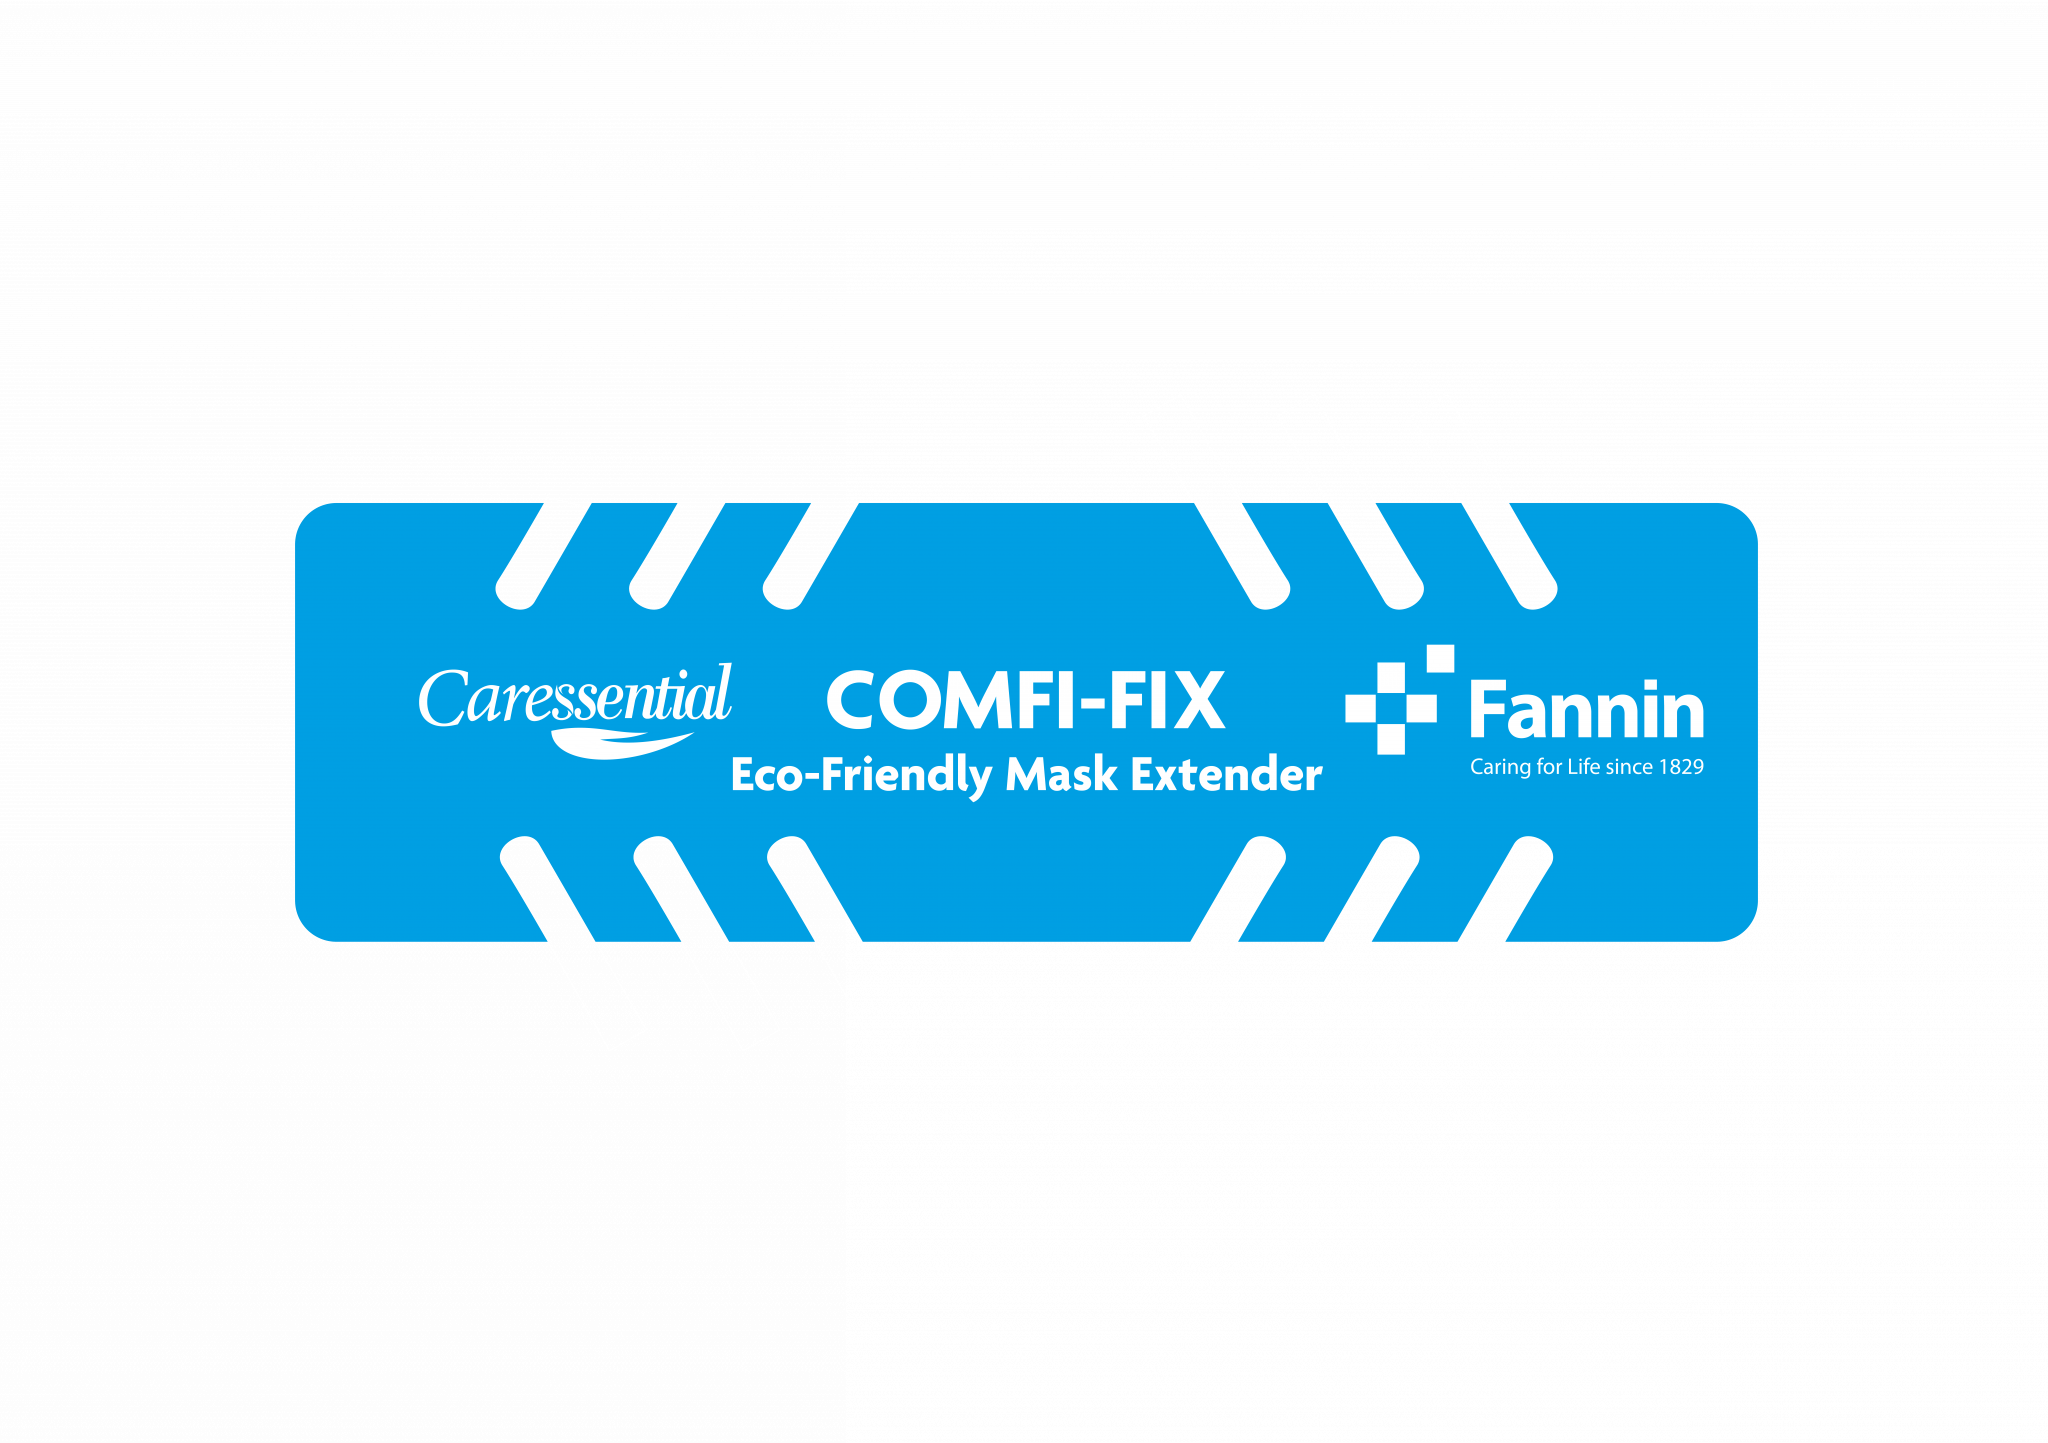 Benefits of the COMFI-FIX Eco-Friendly Mask Extender image cover